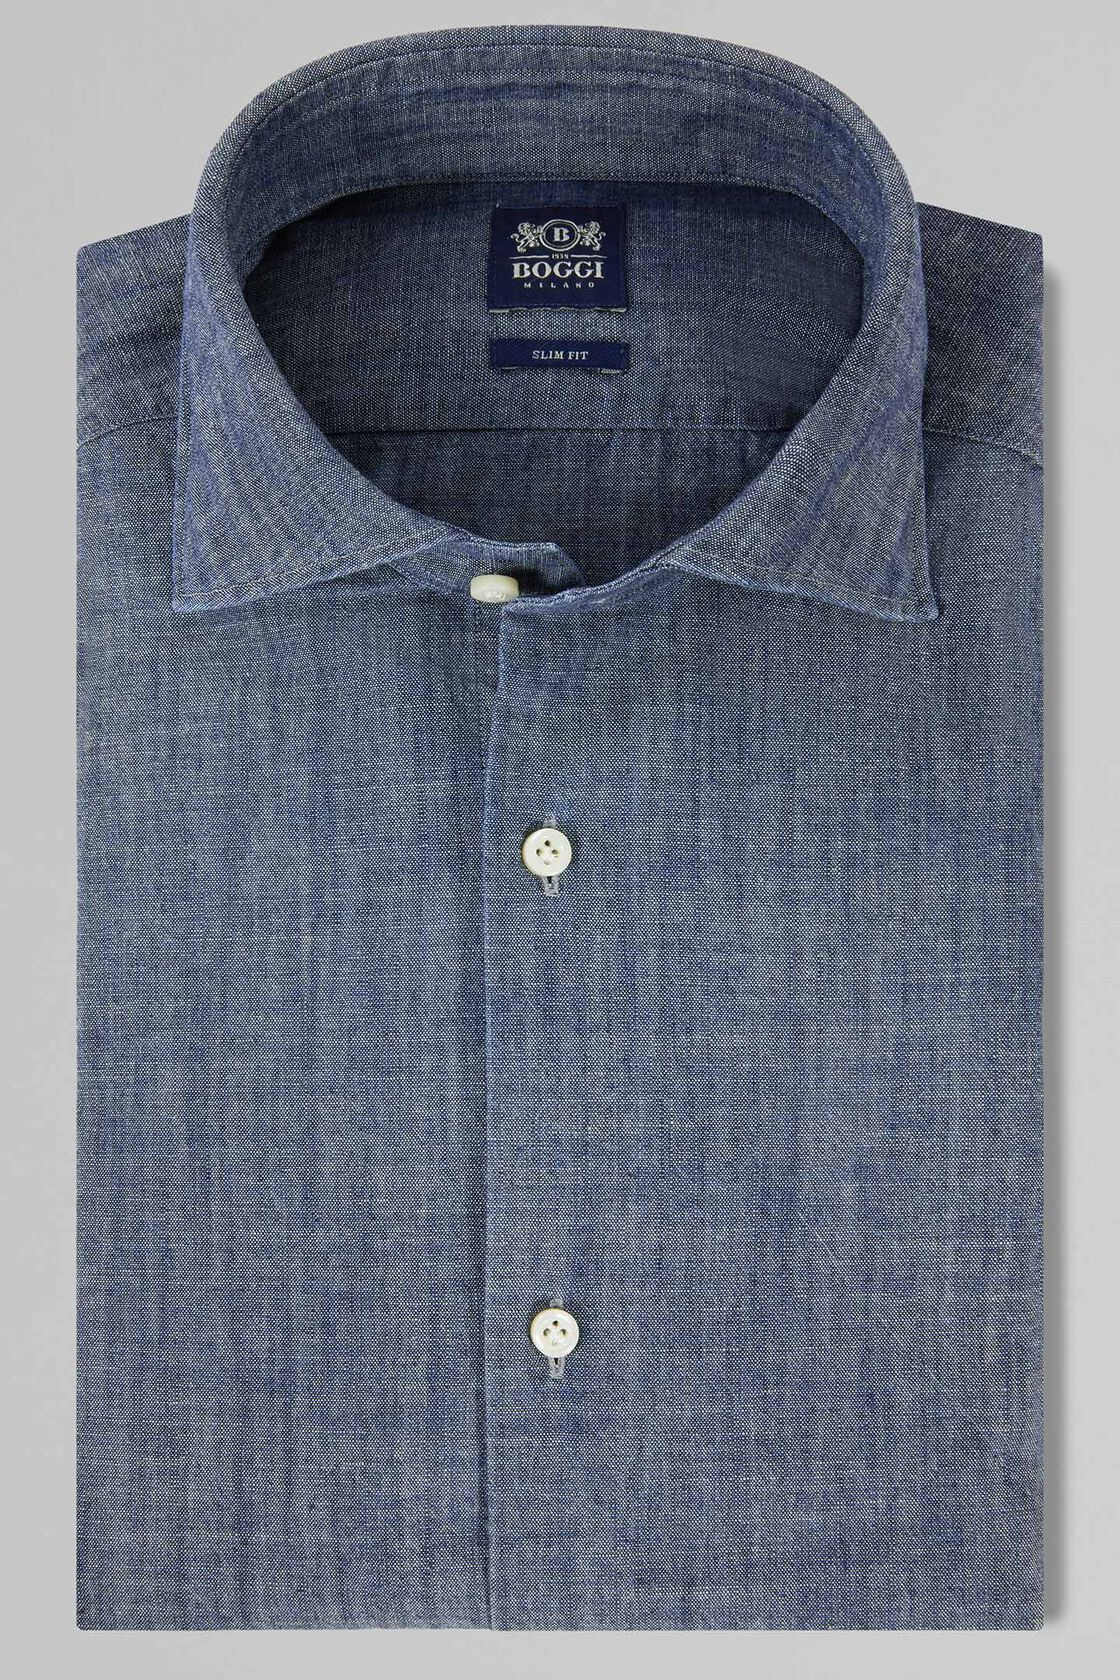 new concept a38f9 55ff8 CAMICIA COLLO CHIUSO DENIM SLIM FIT